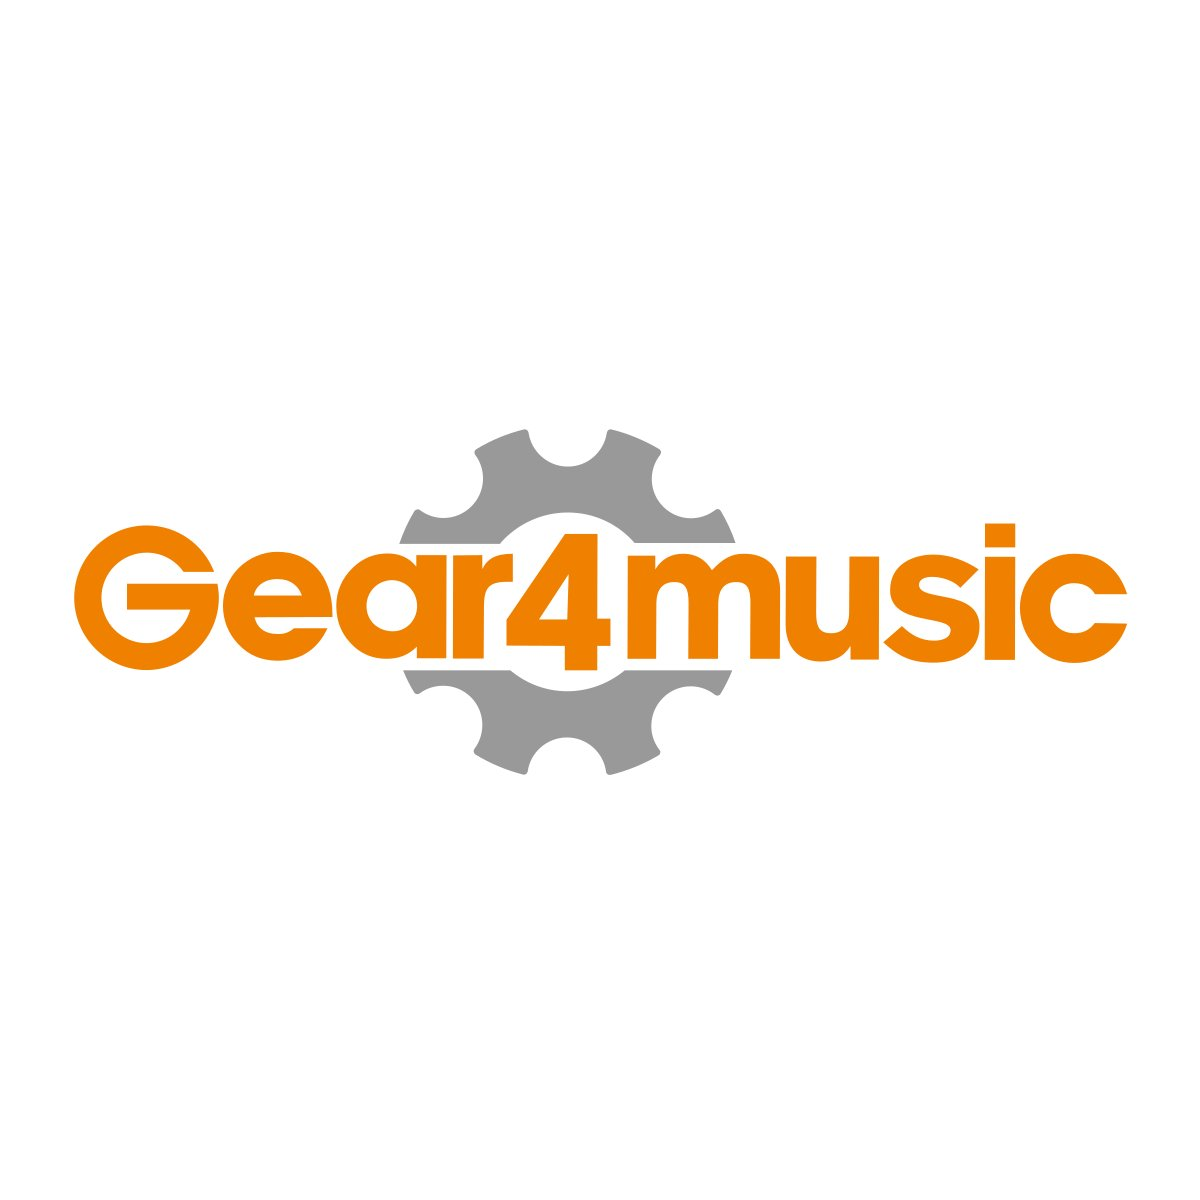 Studentoboe av Gear4music